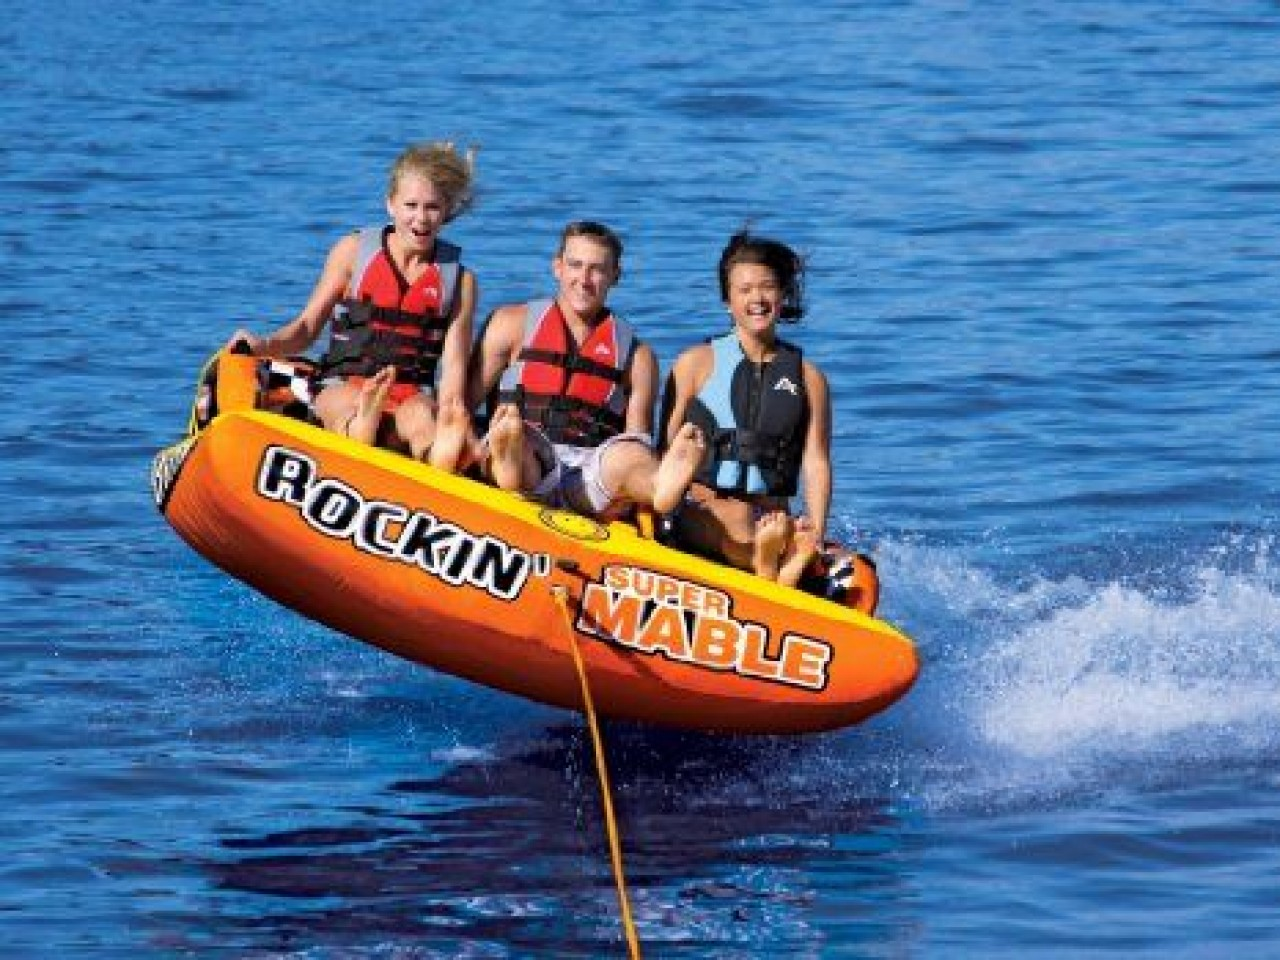 Sharm: Water Sports Fun Trip (2 hrs)